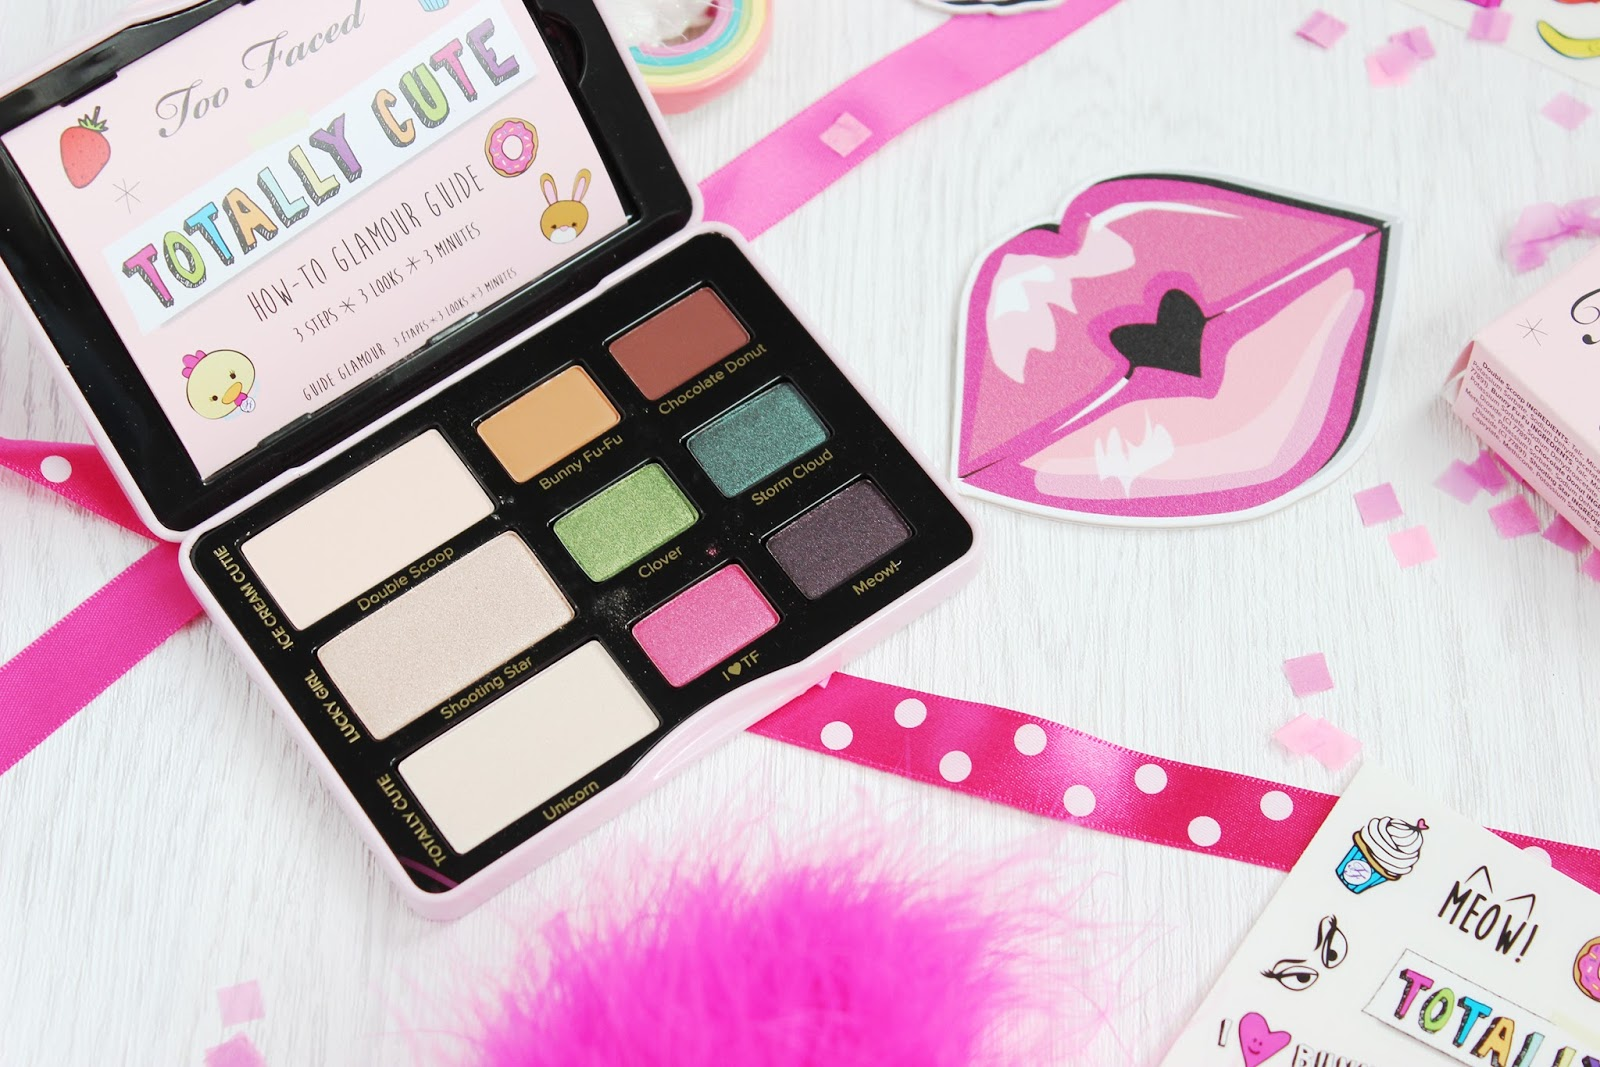 Too Faced Totally Cute eye shadow palette review and swatches